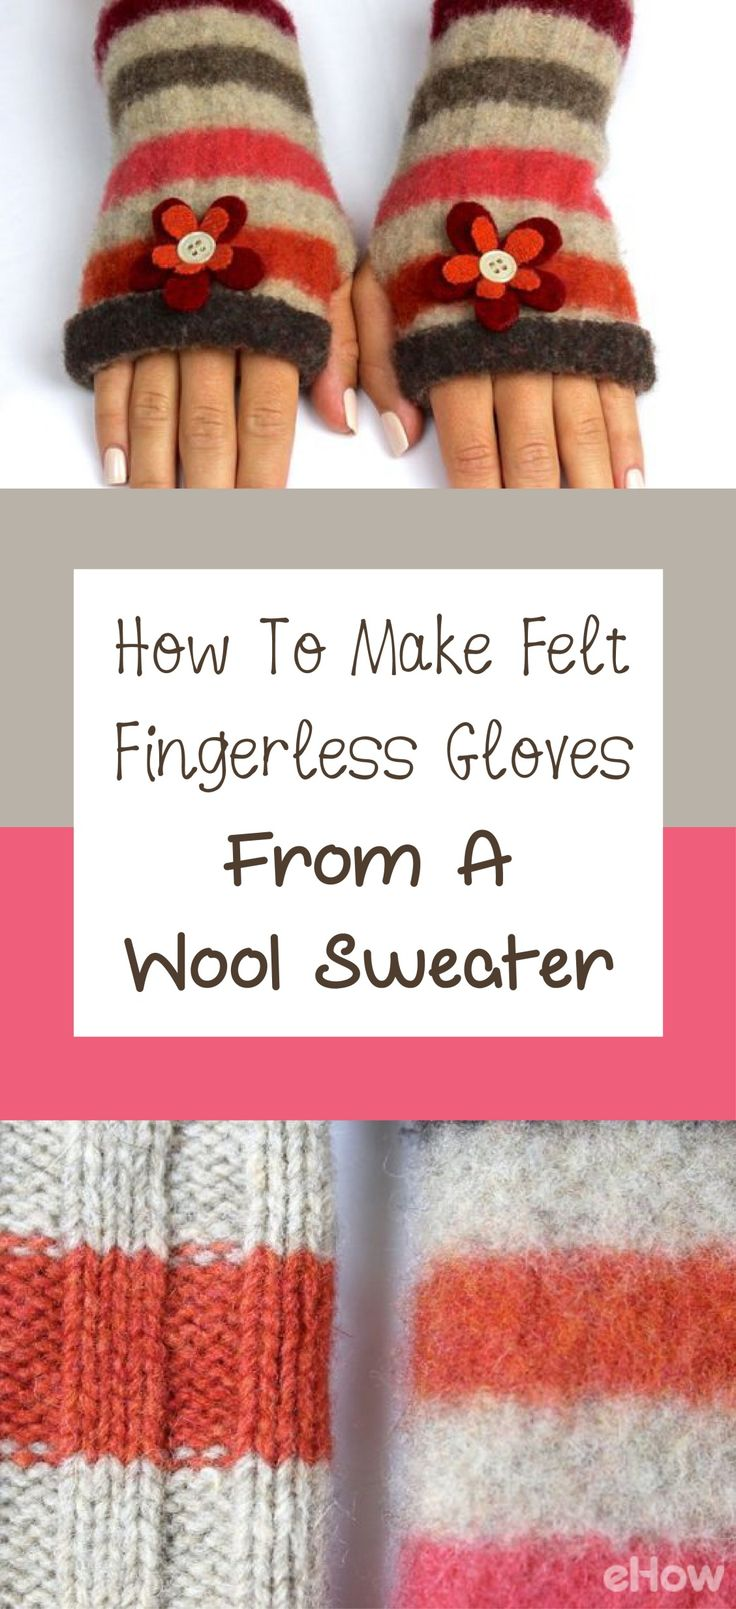 Turn old wool sweaters into adorable fingerless gloves! DIY here: http://www.ehow.com/slideshow_12291221_make-felt-fingerless-gloves.html?utm_source=pinterest.com&utm_medium=referral&utm_content=freestyle&utm_campaign=fanpage